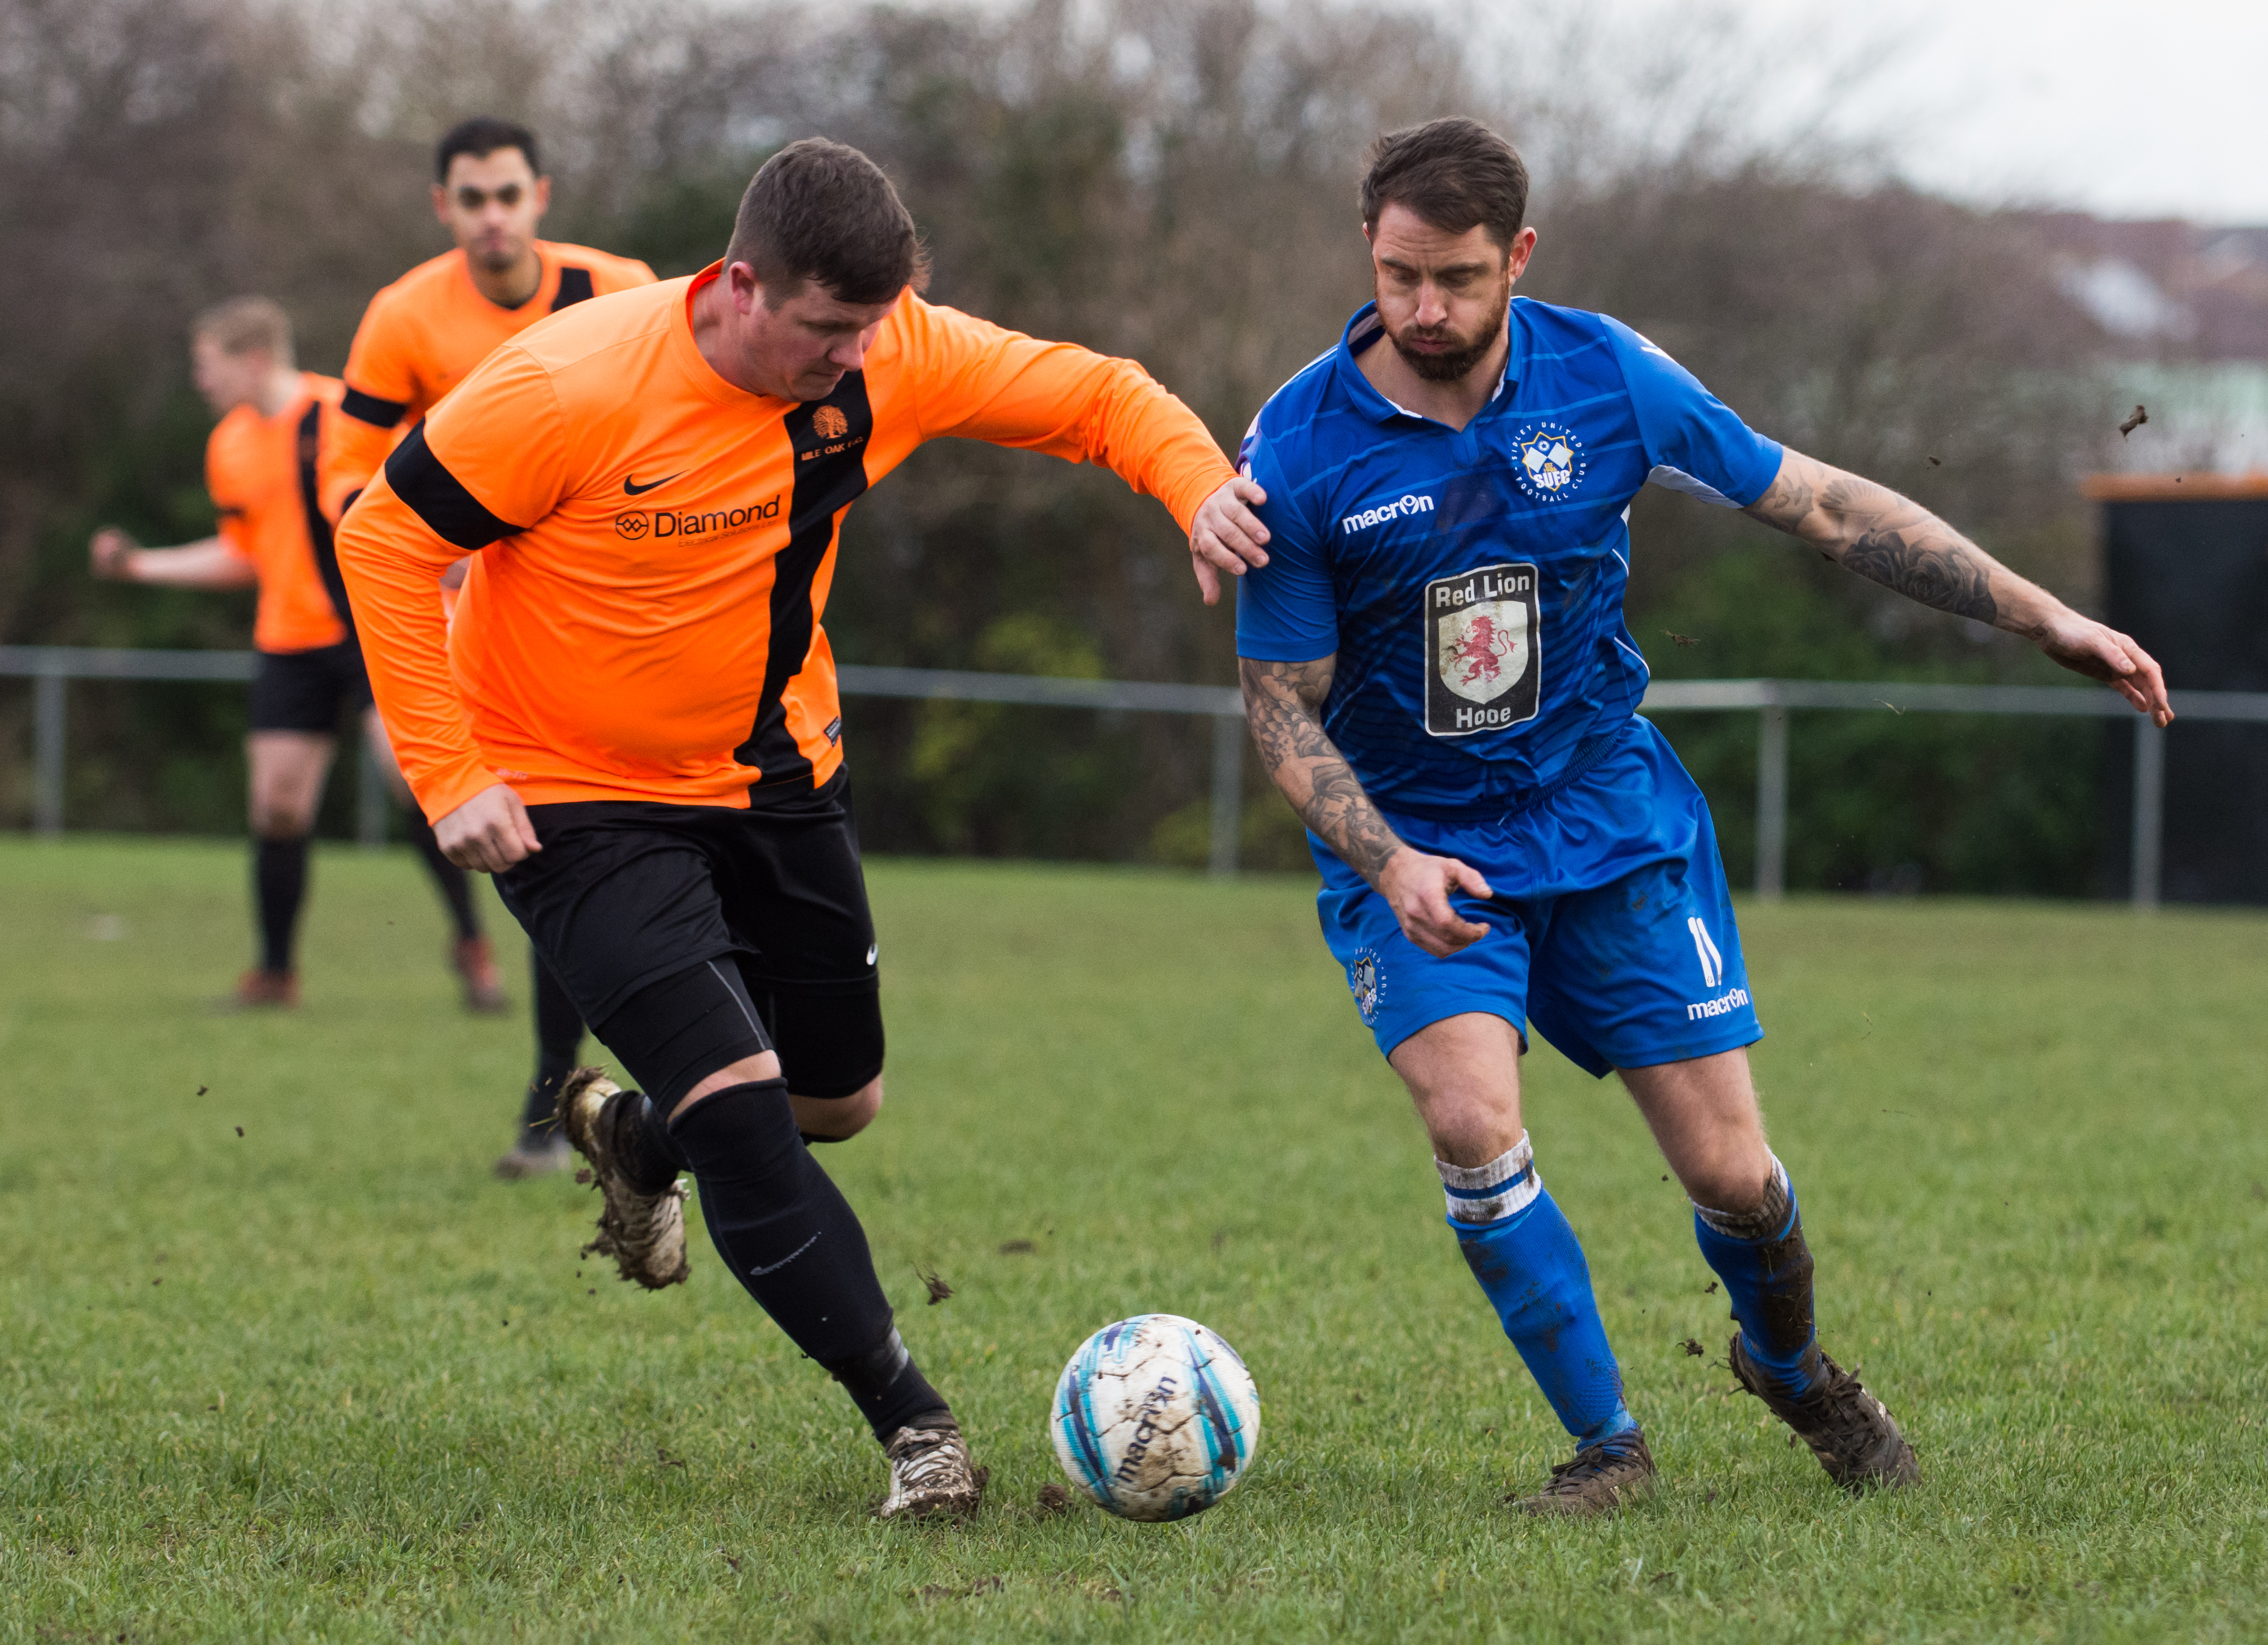 Mile Oak Res vs Sidley United 09.12.17 06